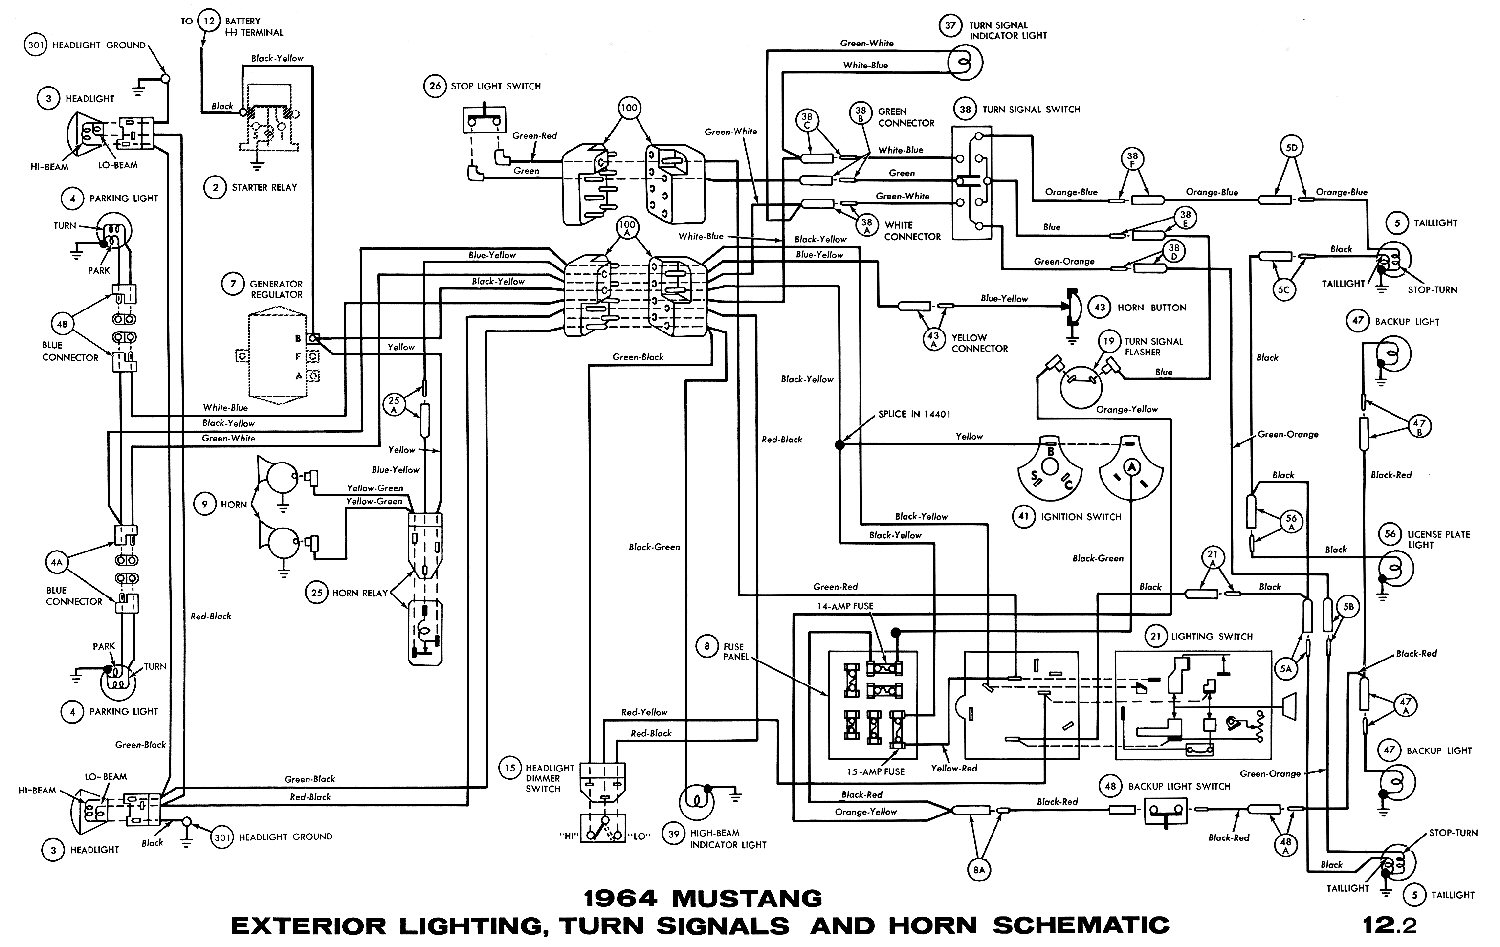 [FPER_4992]  1972 Ford Mustang Wiring Pdf 2007 Vw Gti Engine Diagram -  vww.anggurmasam.astrea-construction.fr | 2015 Mustang Wiring Diagram |  | ASTREA CONSTRUCTION